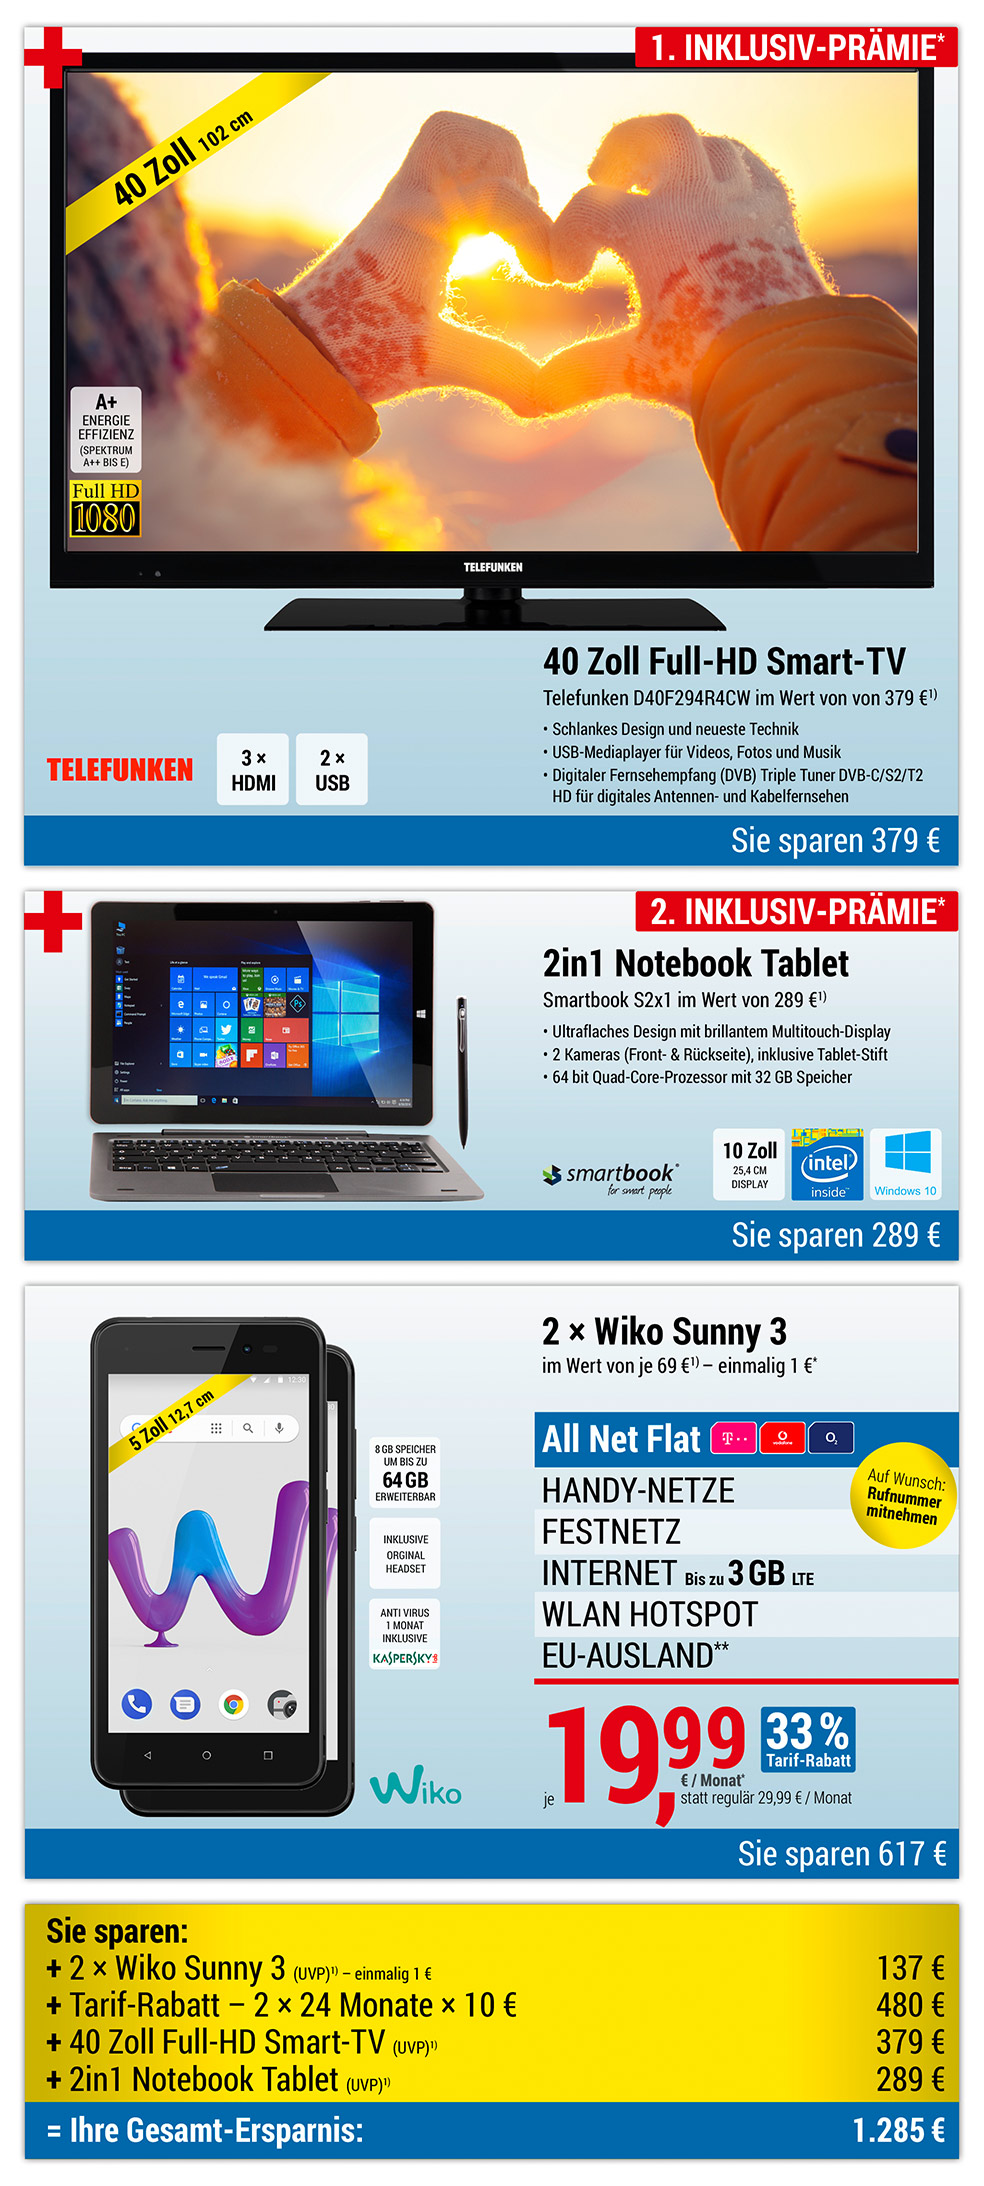 40 Zoll Full HD Smart-TV + 2in1 Tablet INKLUSIVE + 2 × Wiko Sunny 3